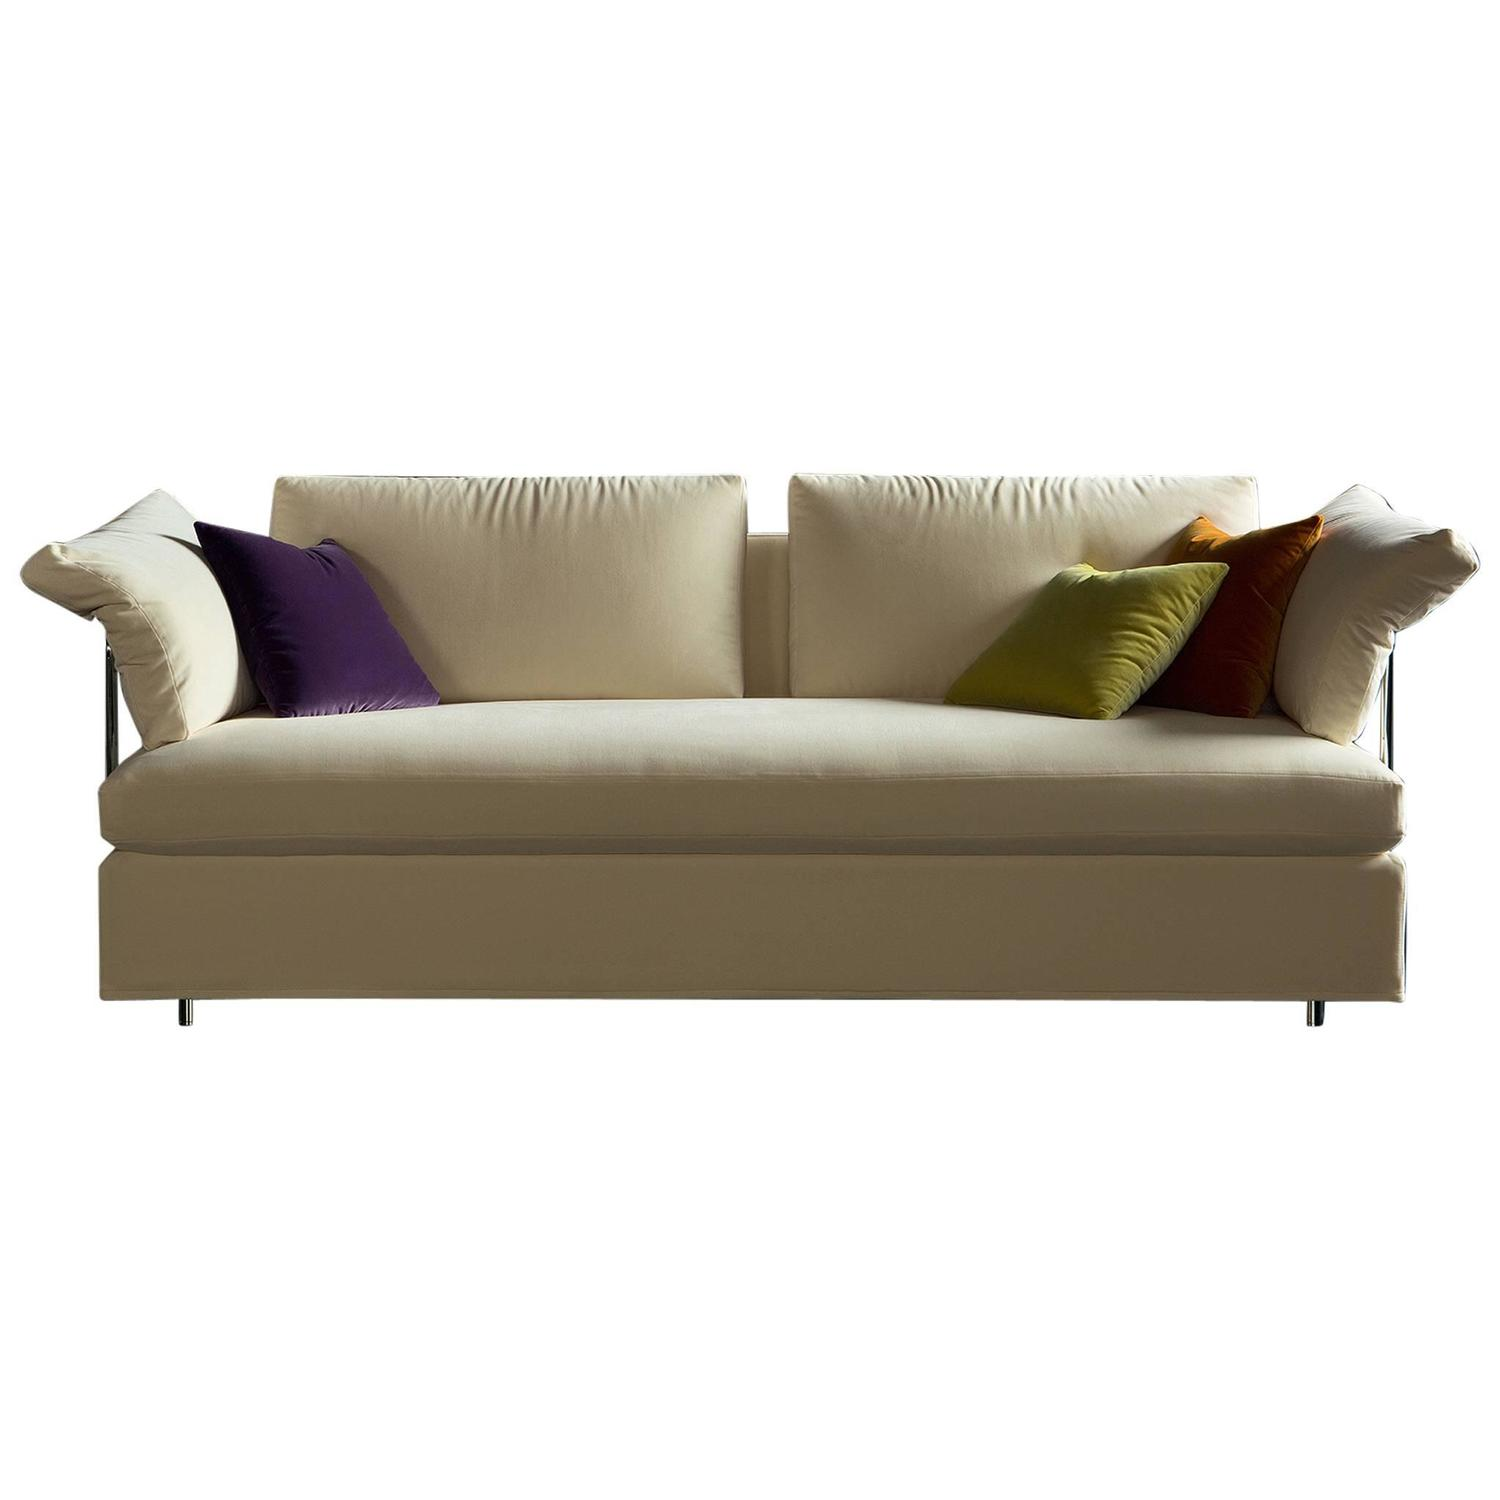 Sofa bed 150cm wide italian modern sofa bed sb46 with arms for Wide couches